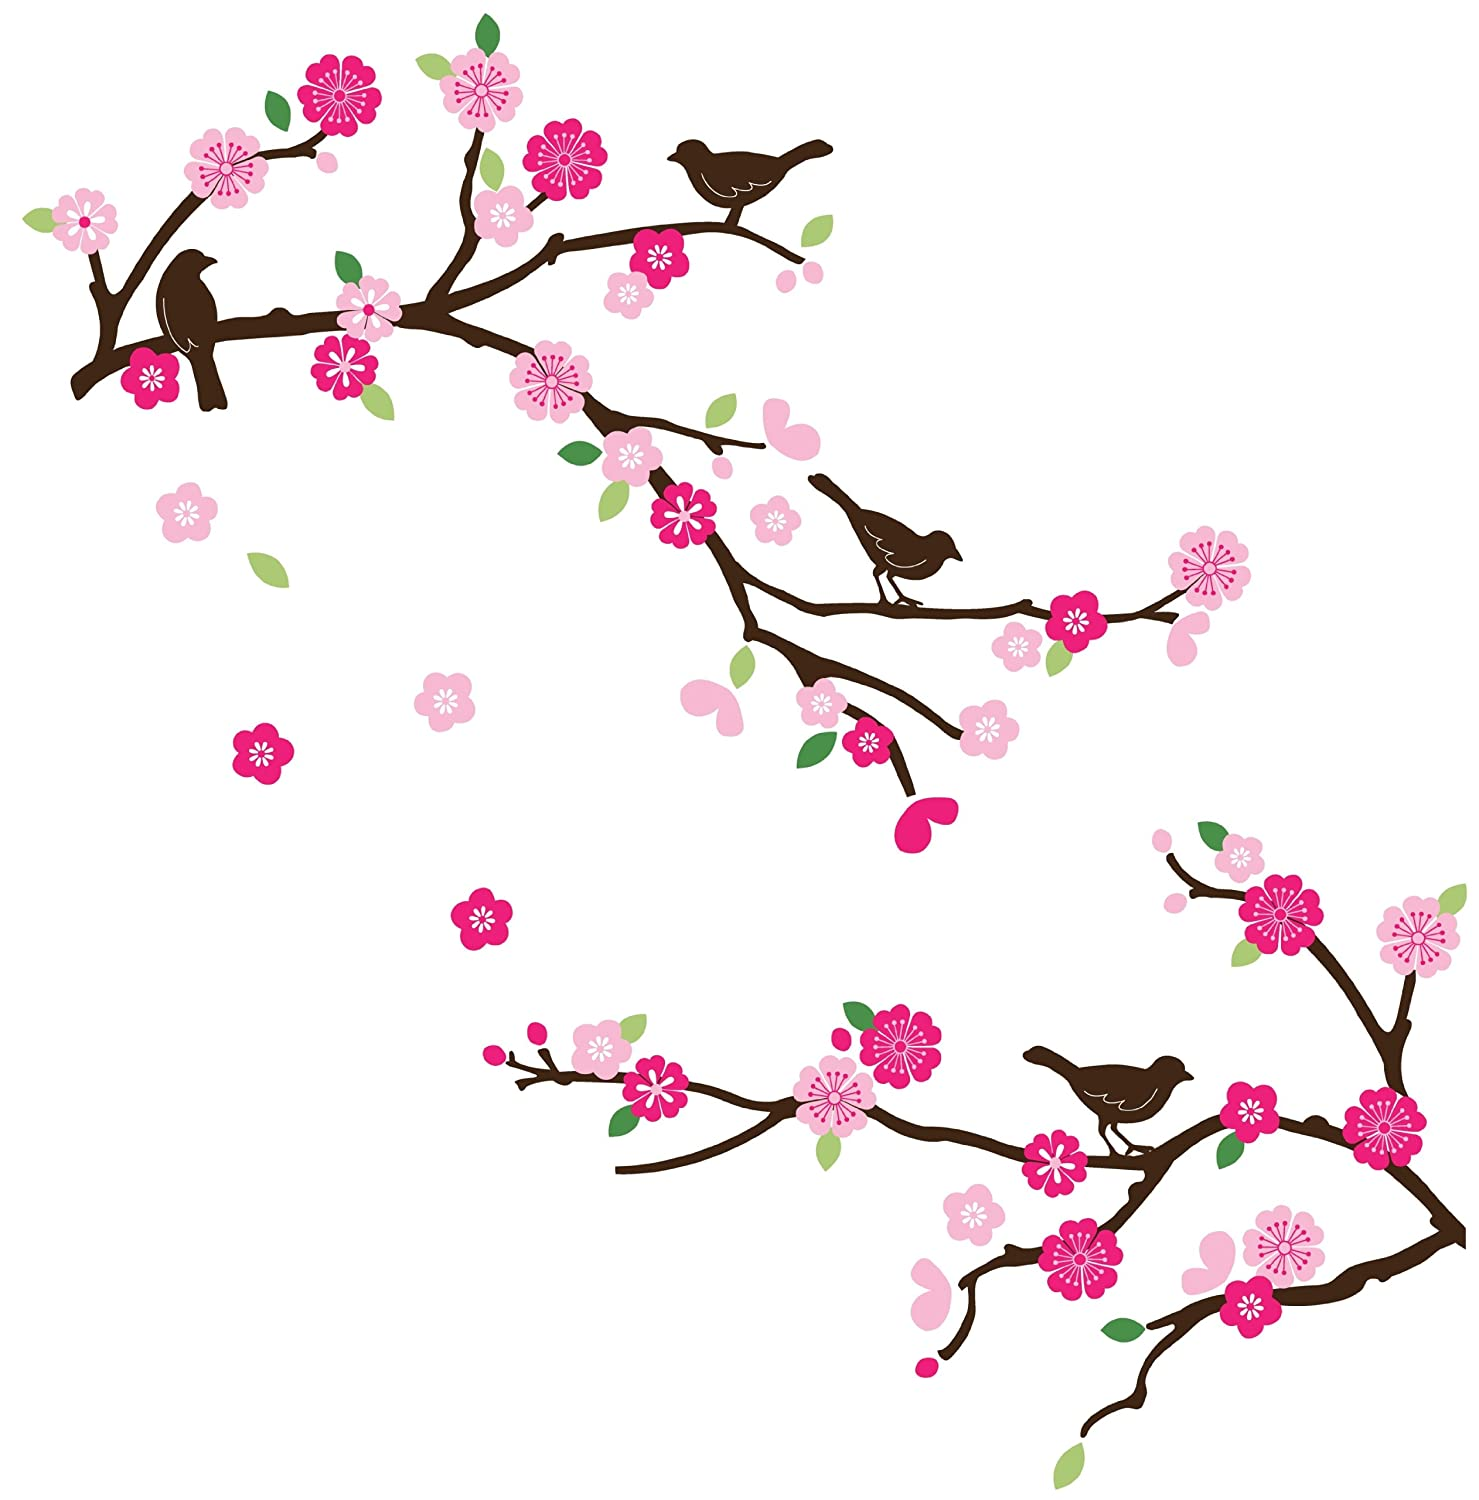 CherryCreek Decals Cherry Blossom & Birds Decorative Nursery/Room Wall Sticker Decals